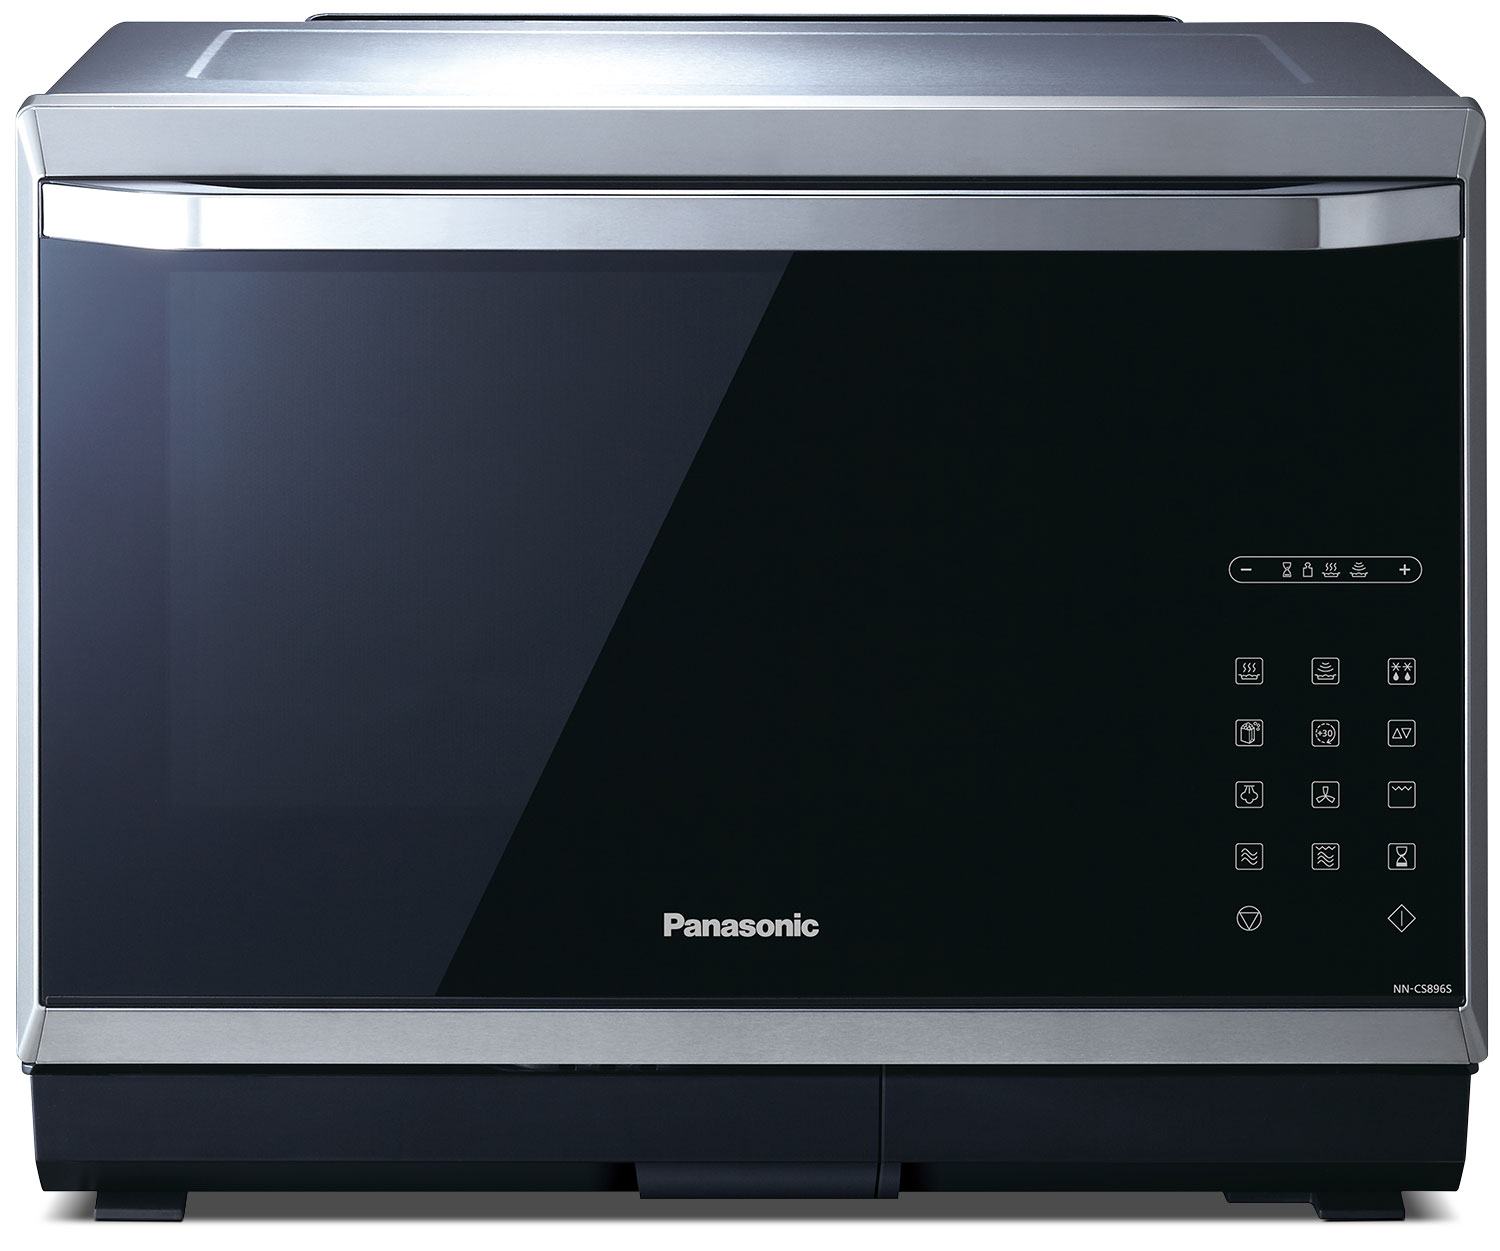 Cooking Products - Panasonic 1.2 Cu. Ft. Steam Convection Countertop Microwave – NNCS896S